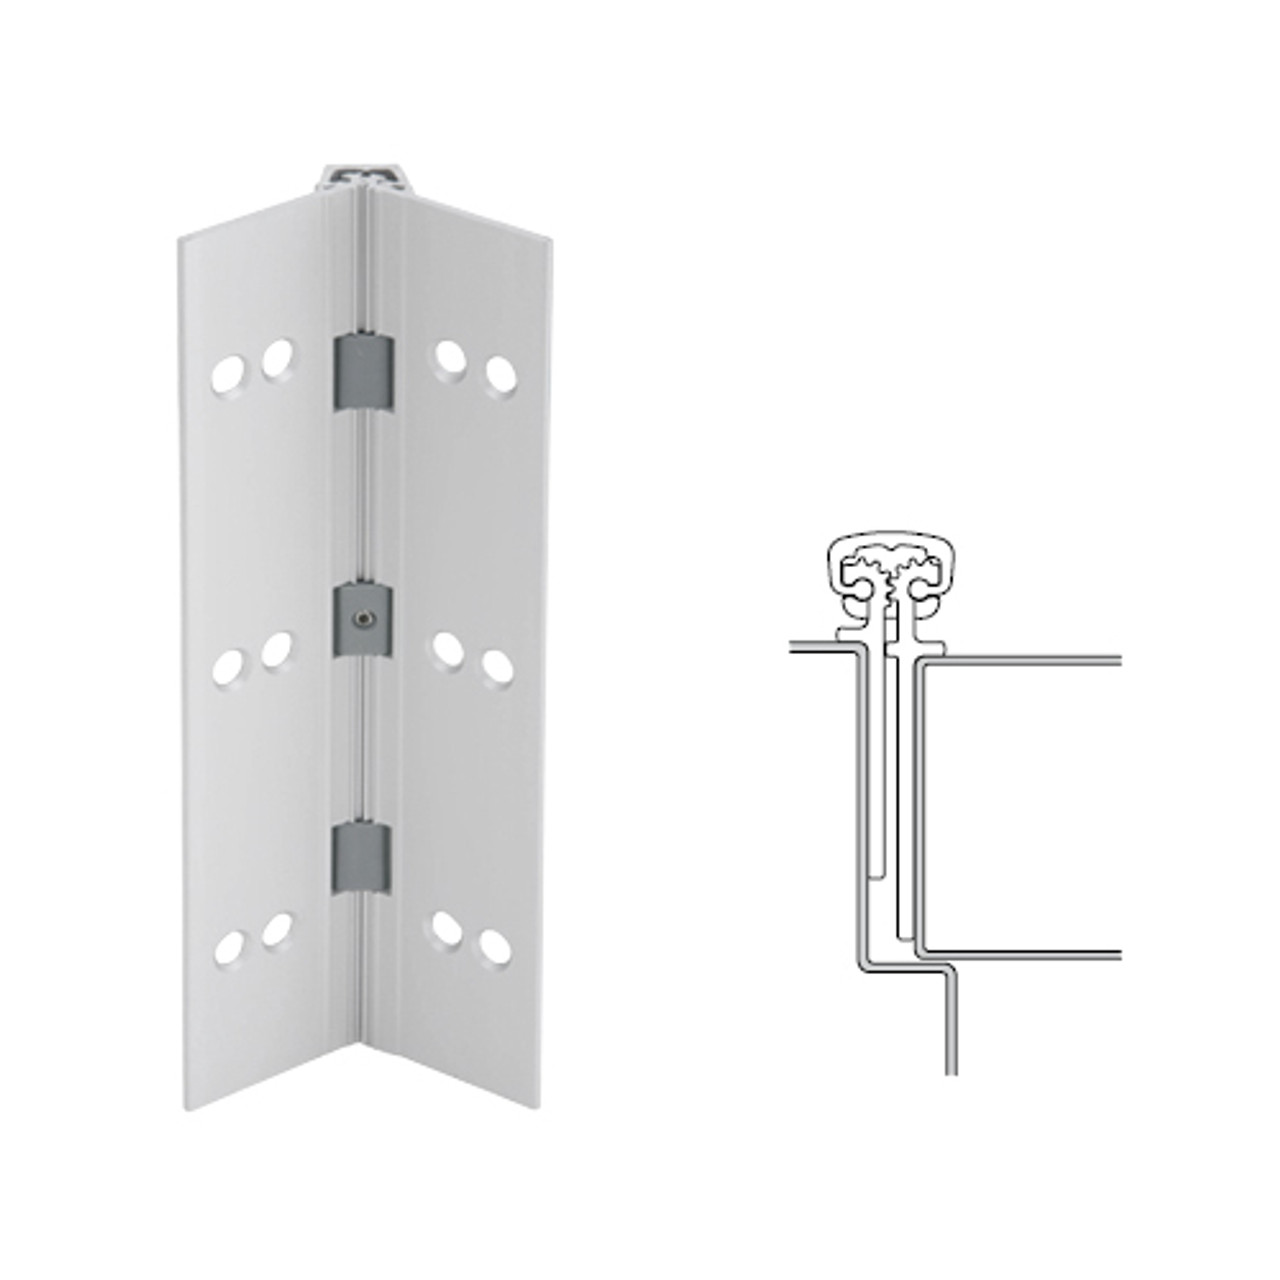 026XY-US28-83-TFWD IVES Full Mortise Continuous Geared Hinges with Thread Forming Screws in Satin Aluminum